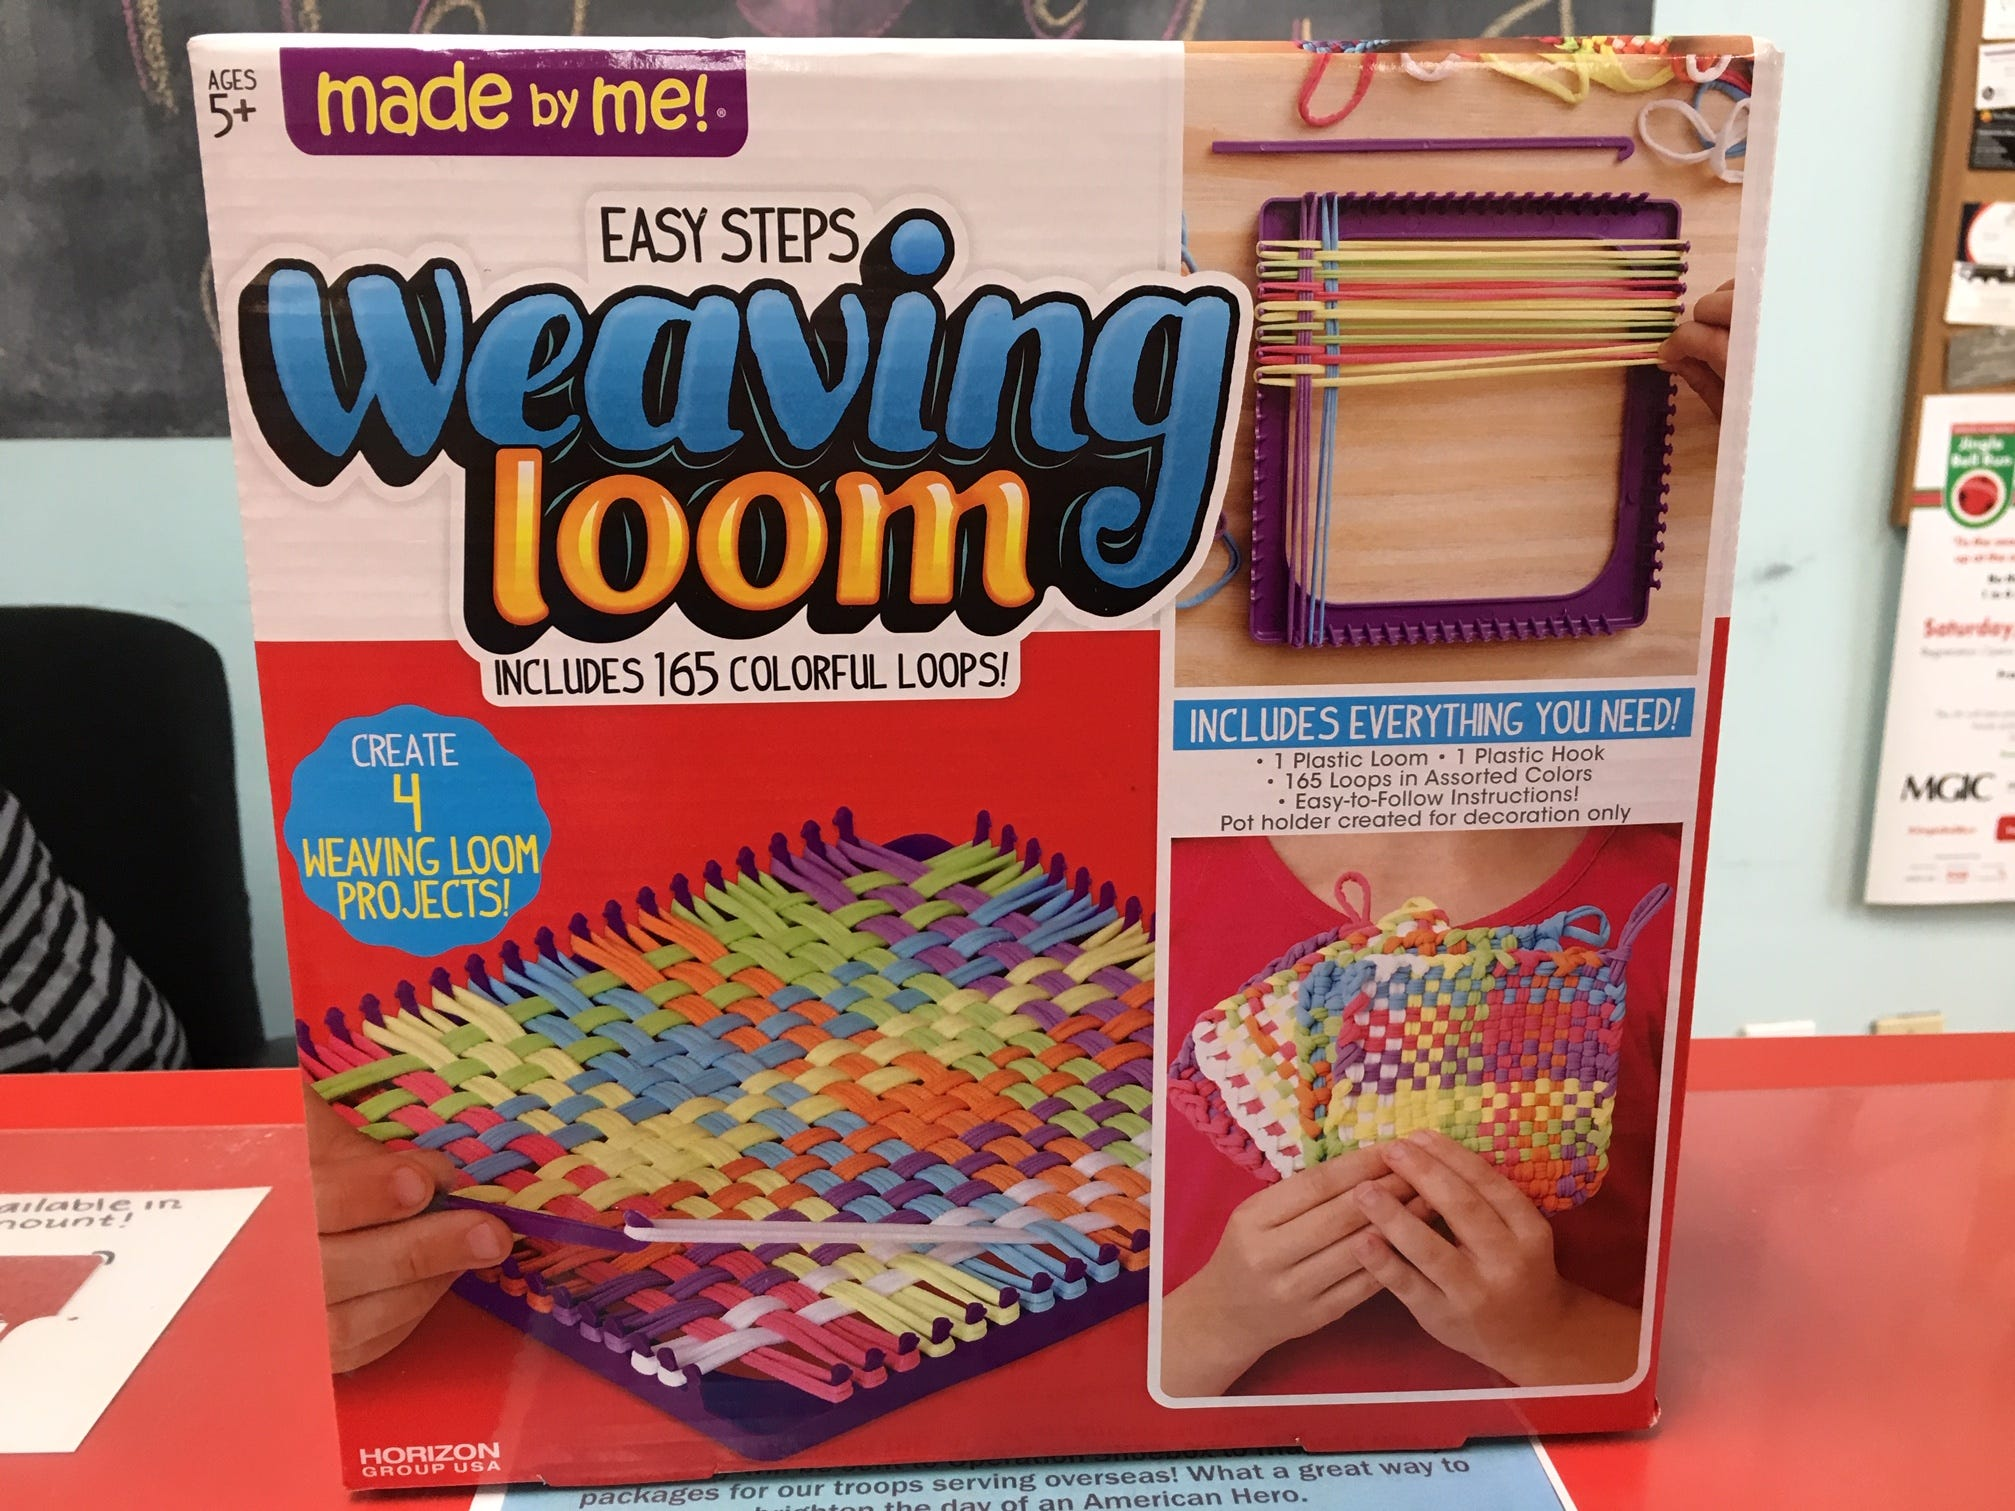 Kids can make potholders as gifts just as their parents and grandparents did. The nostalgic weaving loom is sold at Silly Willyz in Pewaukee.